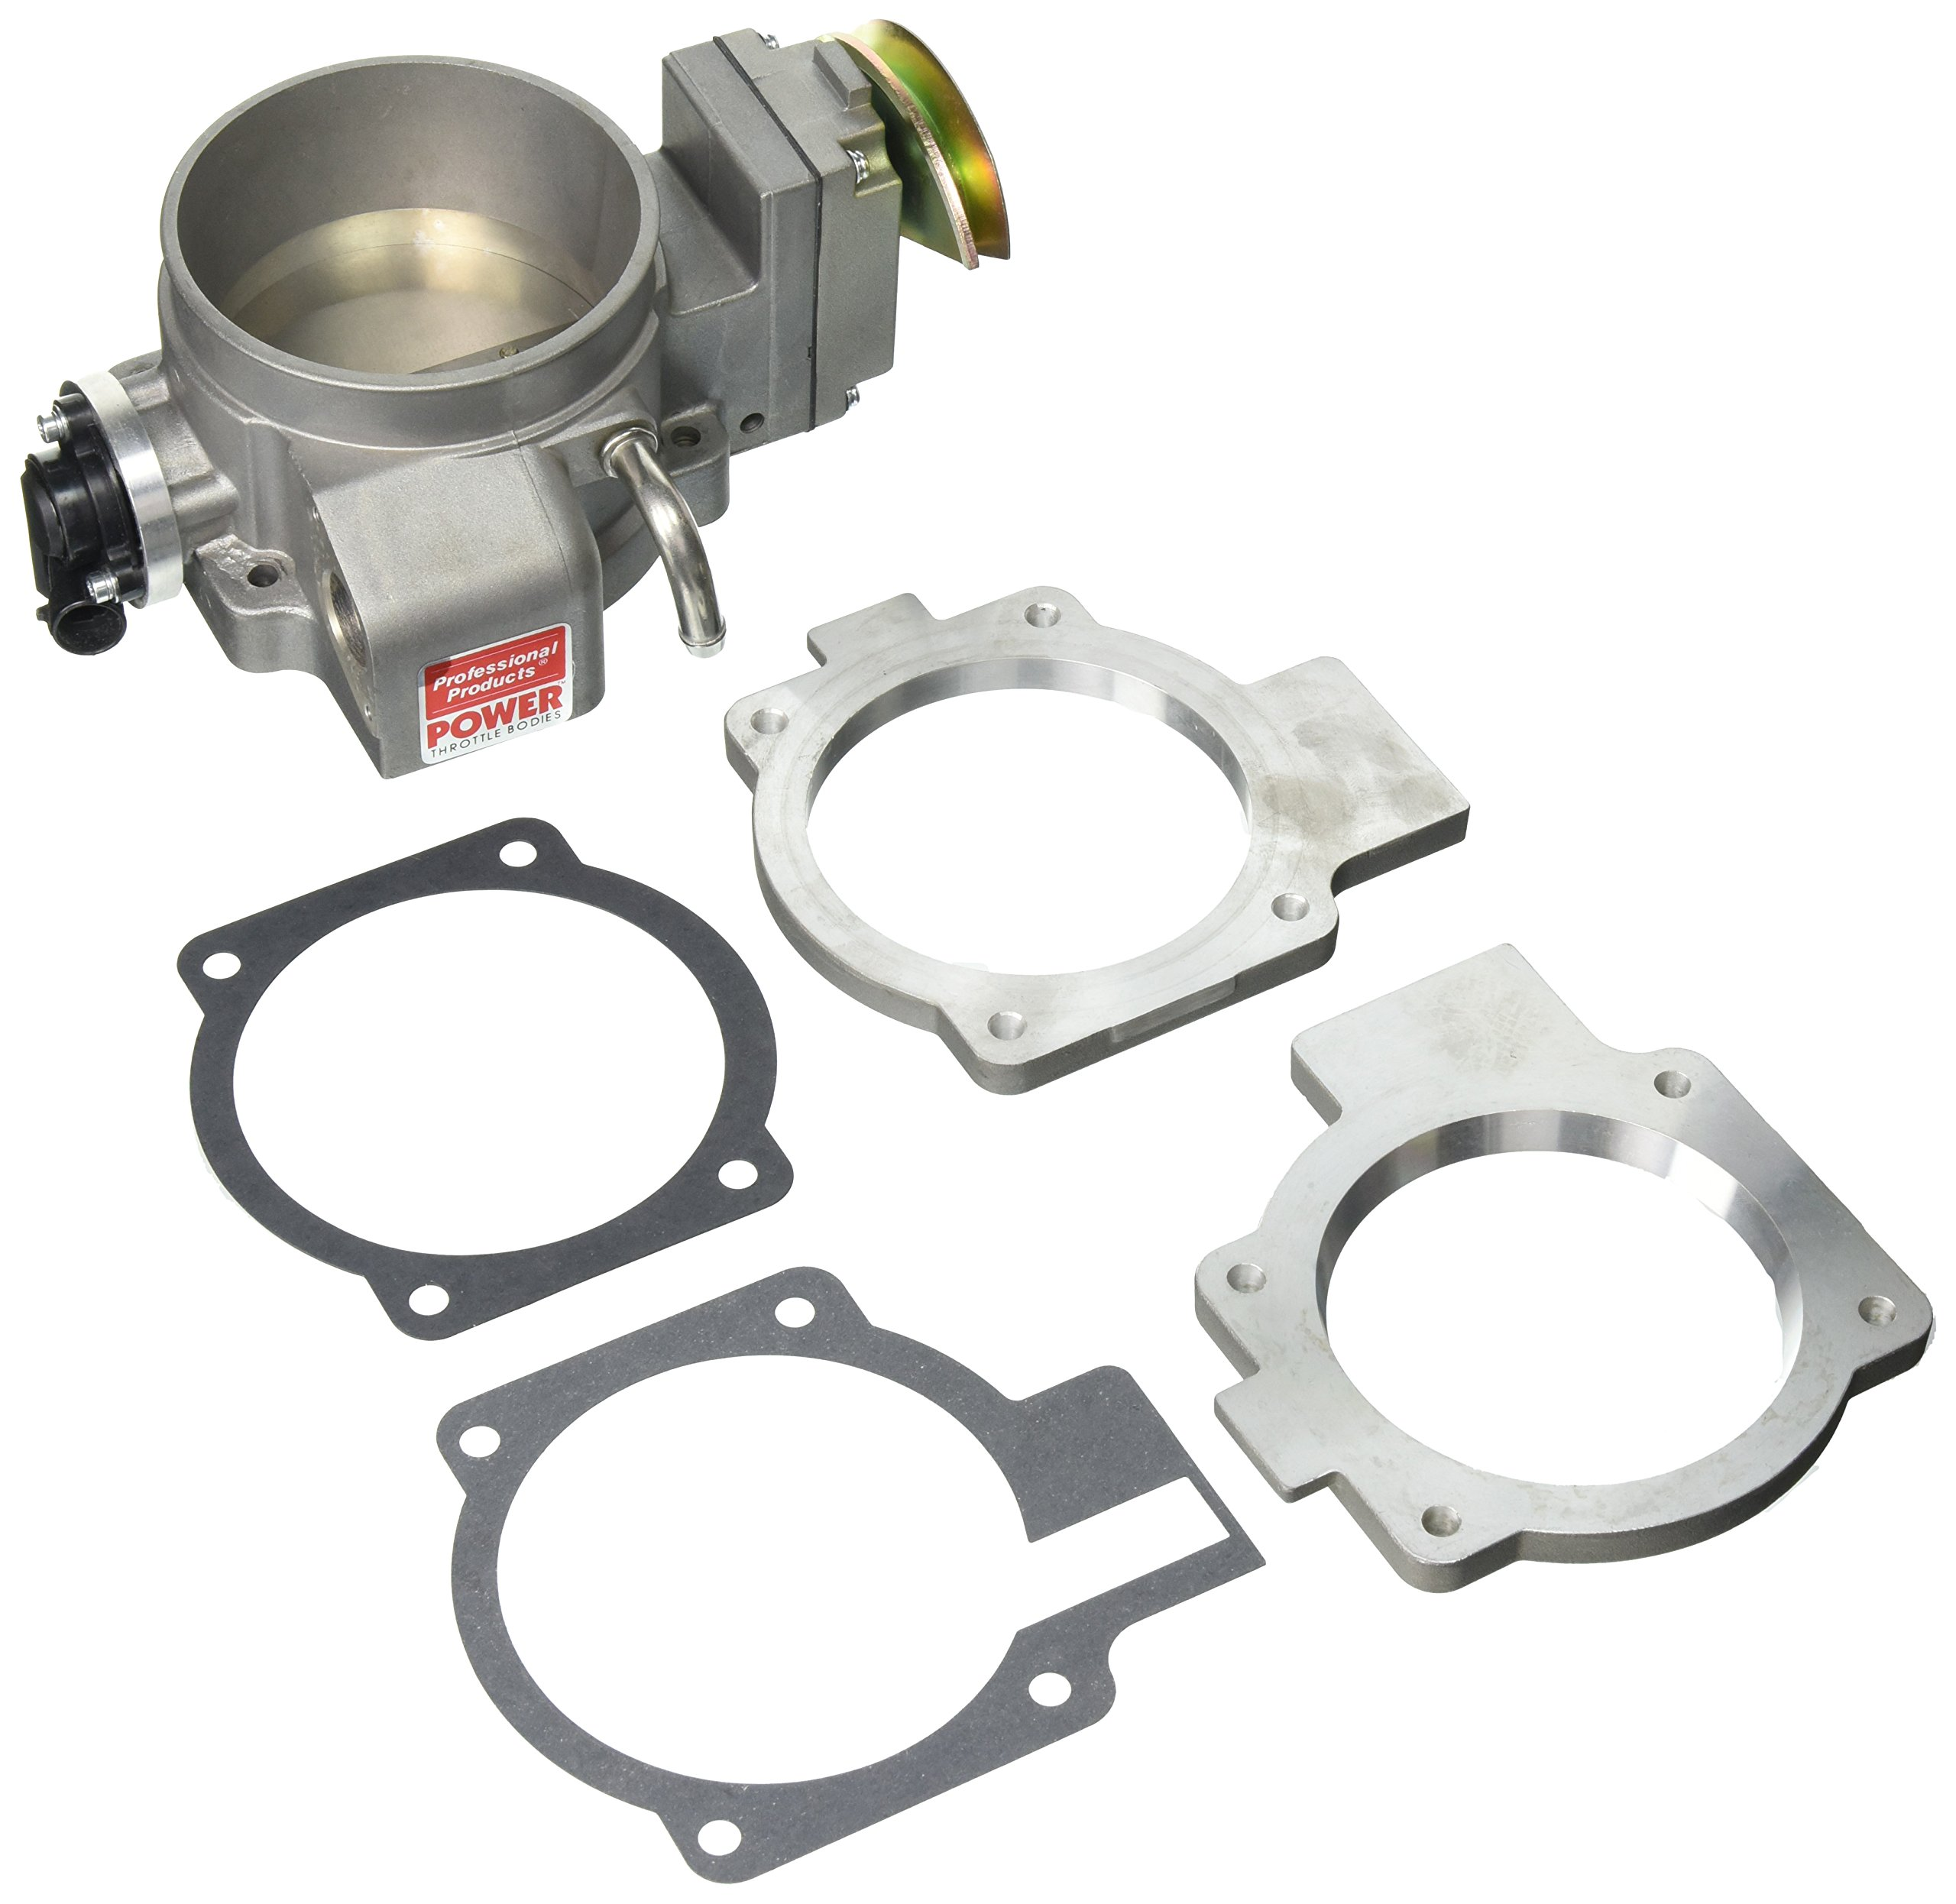 Professional Products (69729) 96mm Satin Throttle Body for Chevrolet/GM LS2 by Professional Products